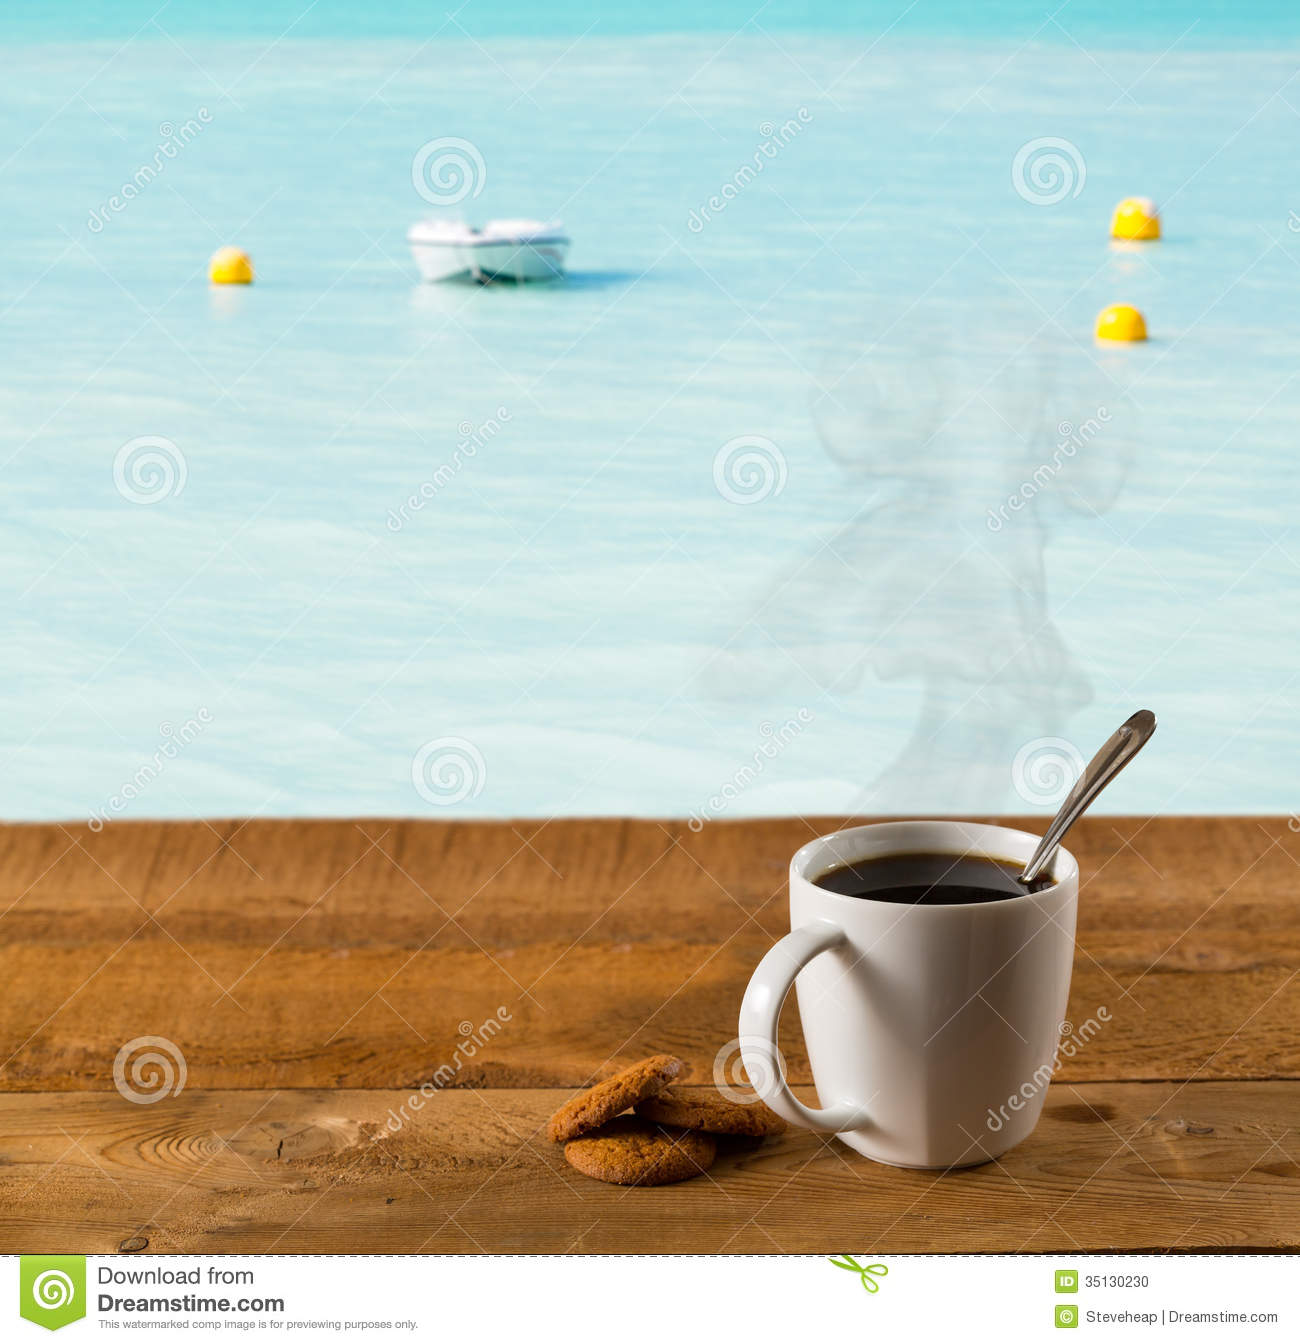 Morning Cup Of Coffee By Warm Caribbean Sea Stock Photo - Image of nature, hills: 35130230